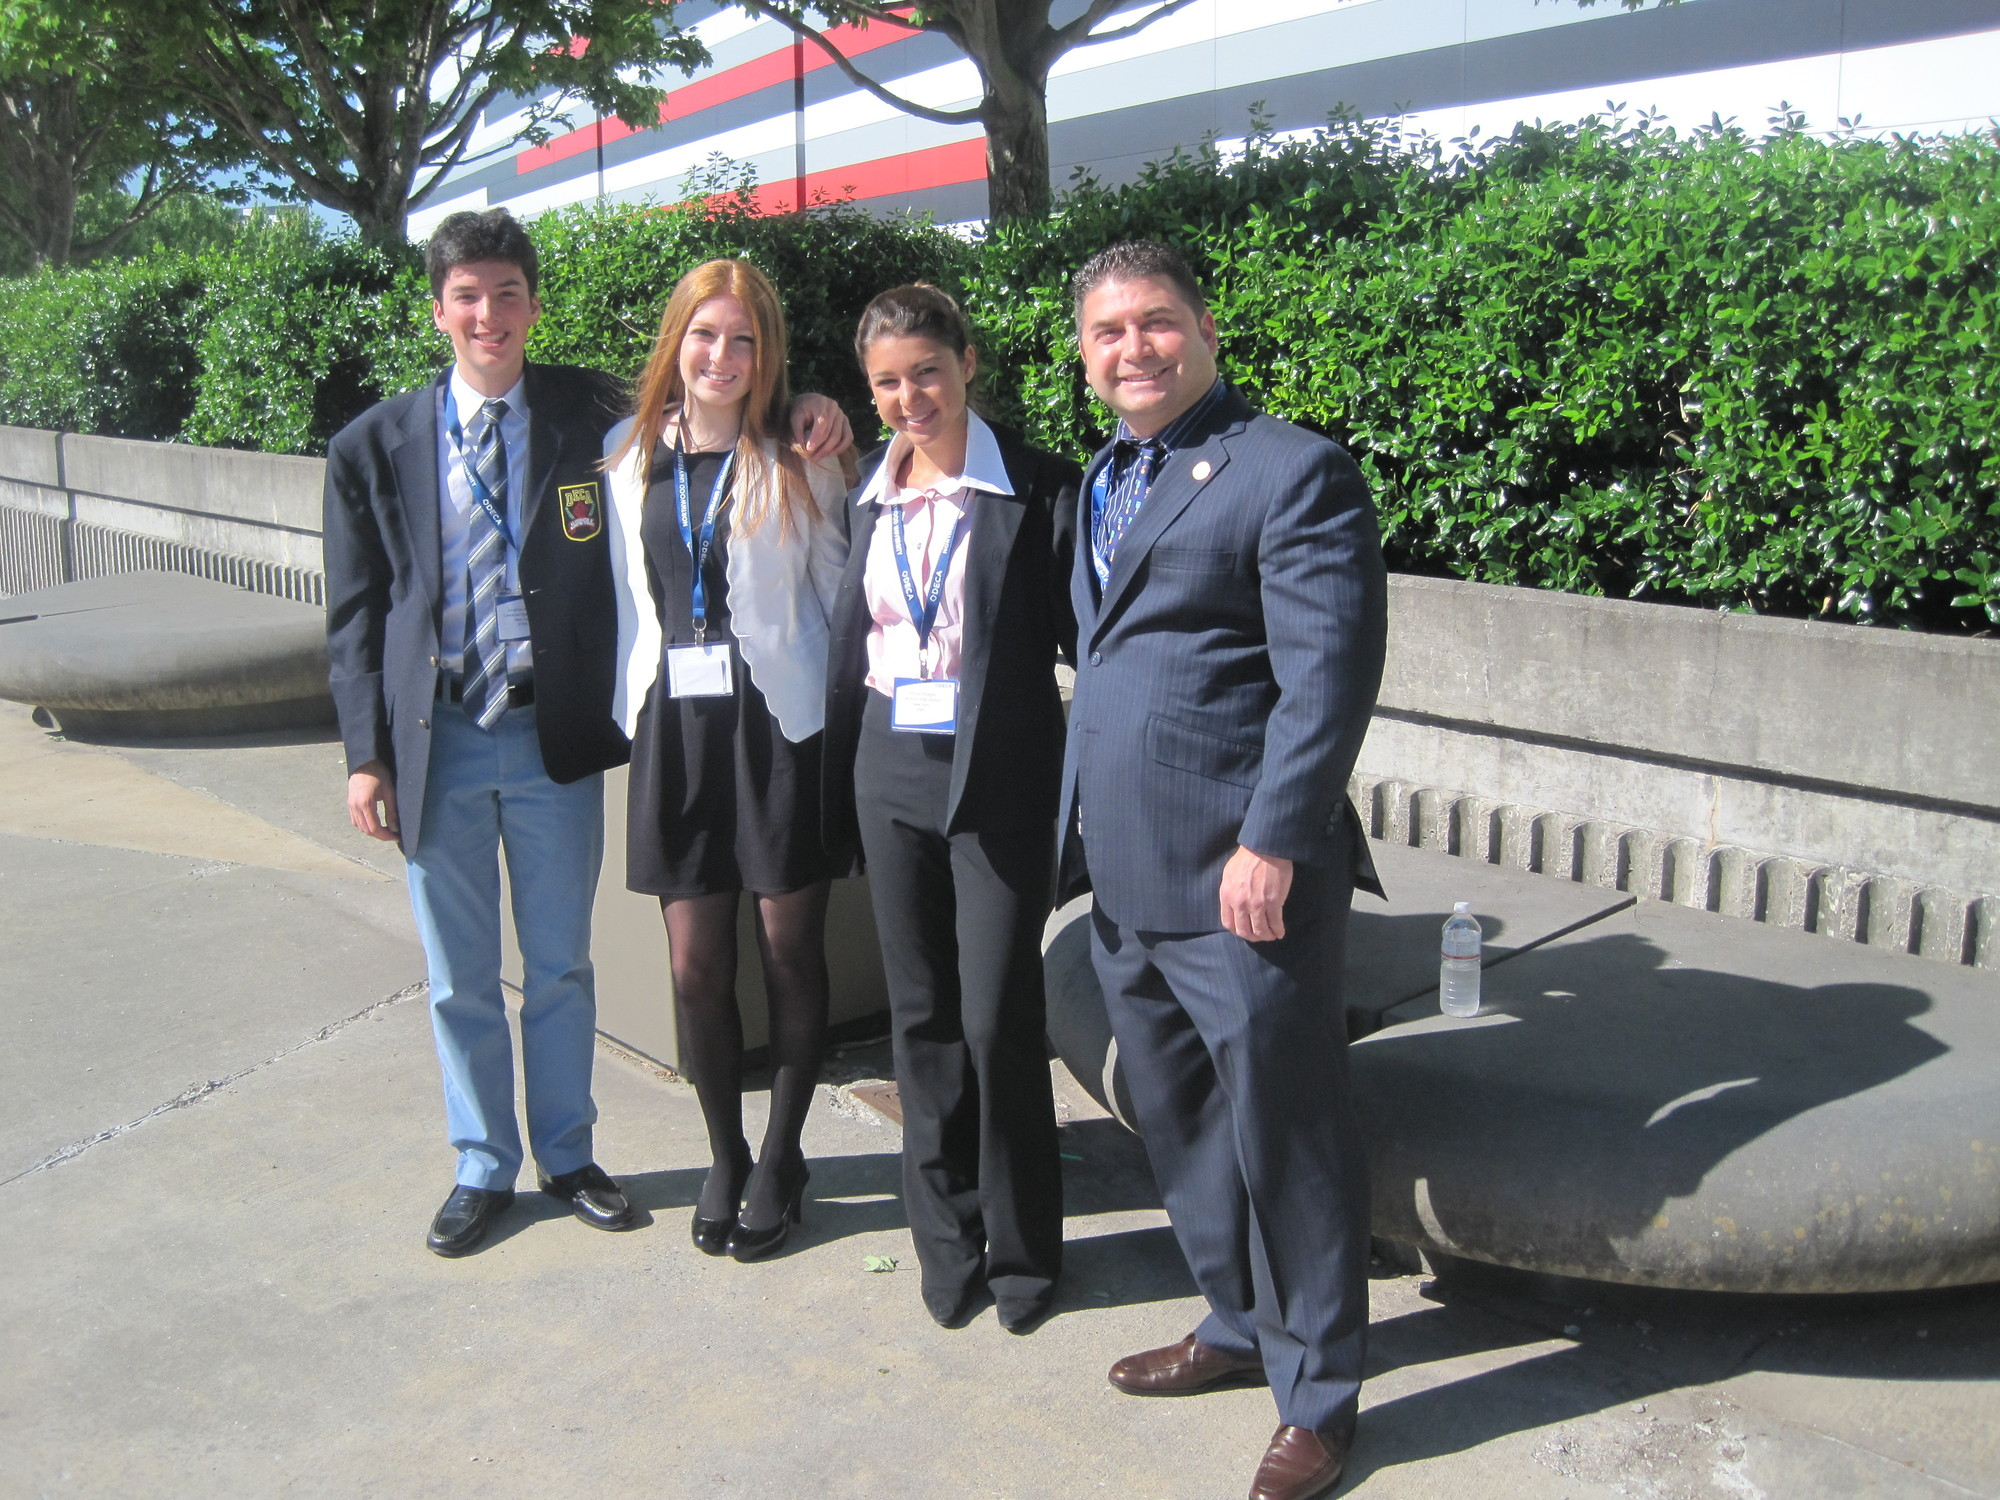 Lawrence High School students have had success at DECA competitions, including this year's fourth place finish by Victoria DiCeglio. From left were students Jonathan Rutchik, Jessica Beyer, DiCeglio and advisor Mark Albin.